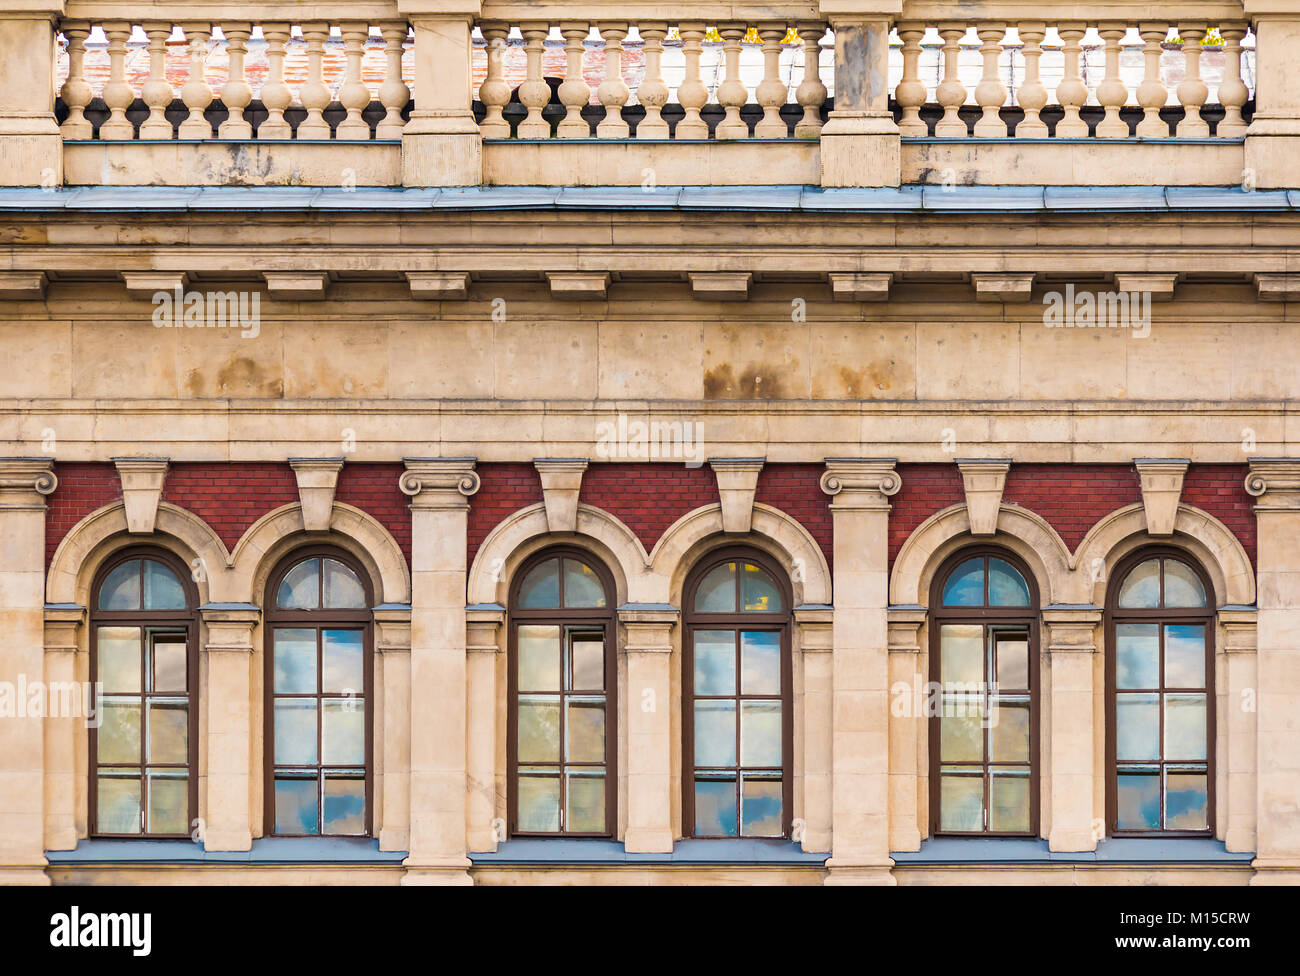 Several windows in a row and balustrade on the facade of the urban historic building front view, Saint Petersburg, - Stock Image